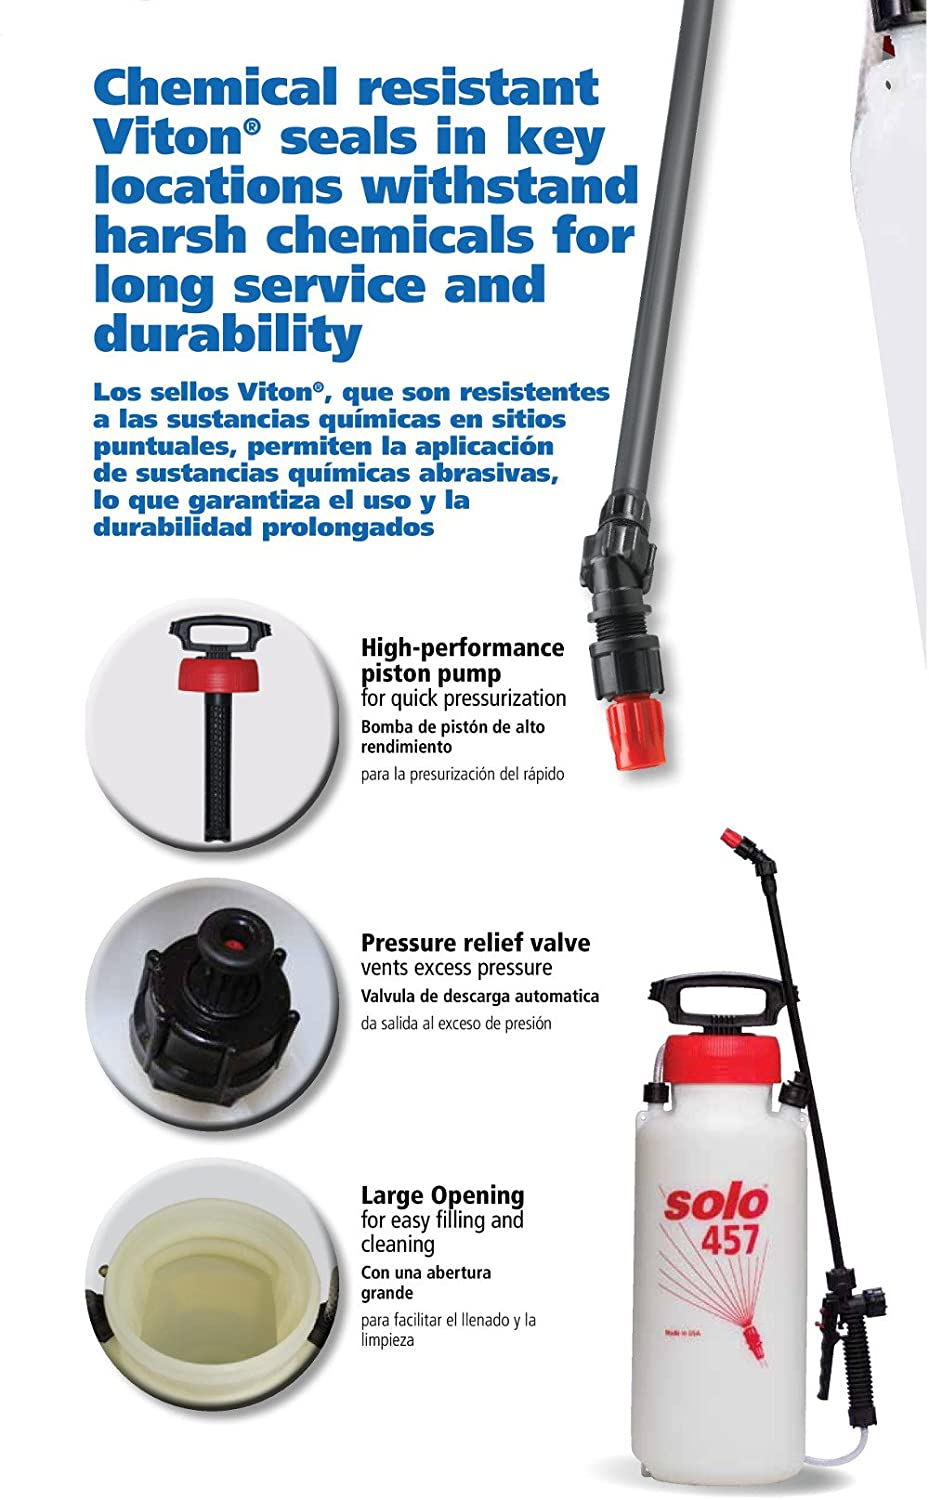 Amazon.com : Solo 457 3-Gallon Professional Handheld Sprayer with Carrying Strap : Lawn And Garden Sprayers : Garden & Outdoor